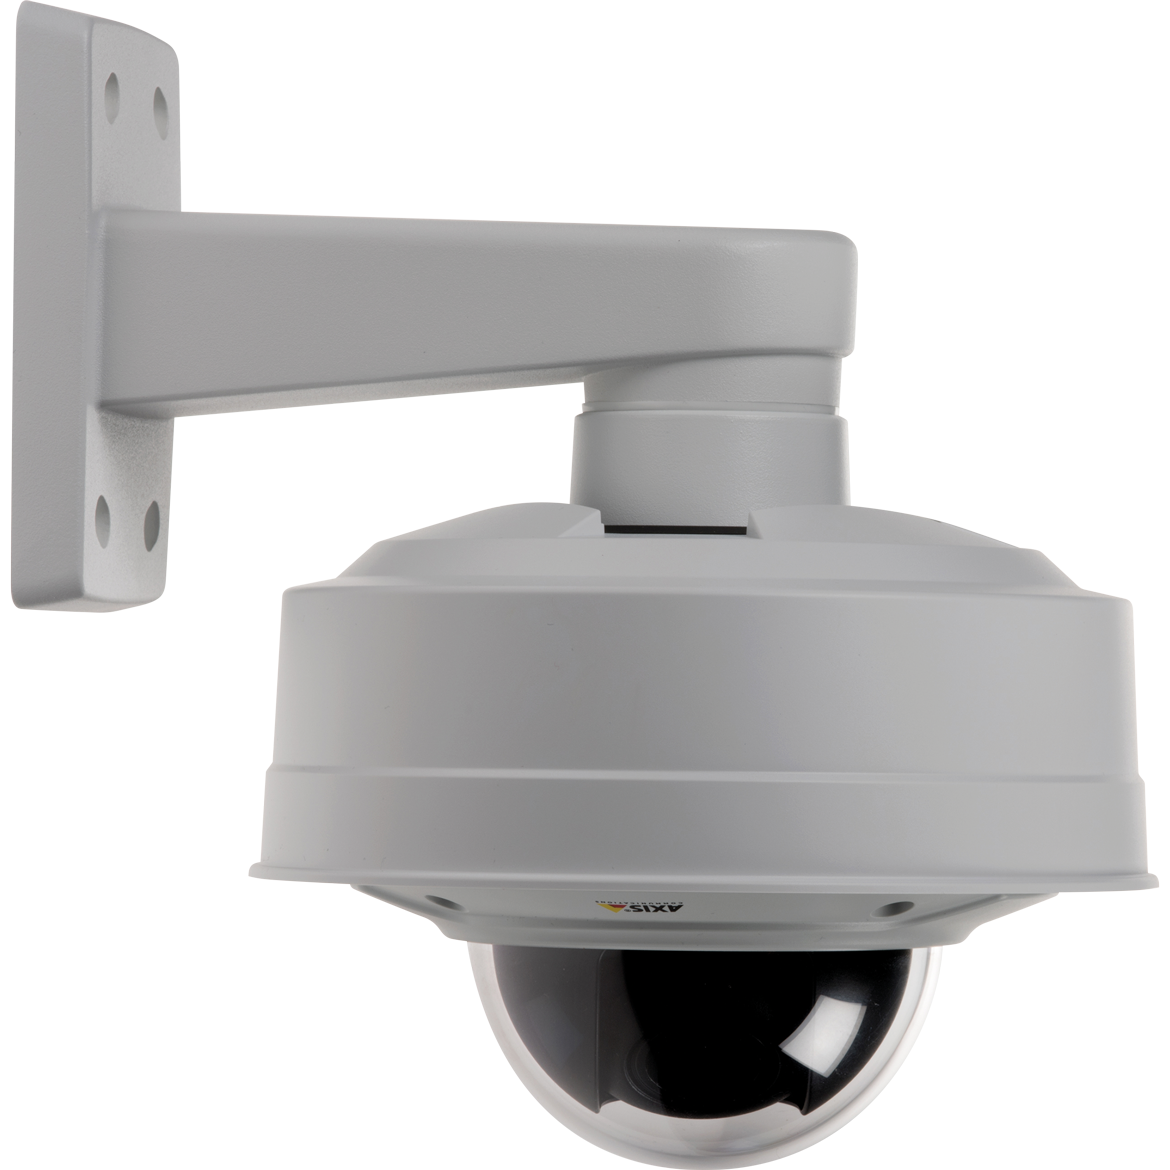 AXIS T91E61 Wall Mount together with an Axis fixed dome newtork camera.